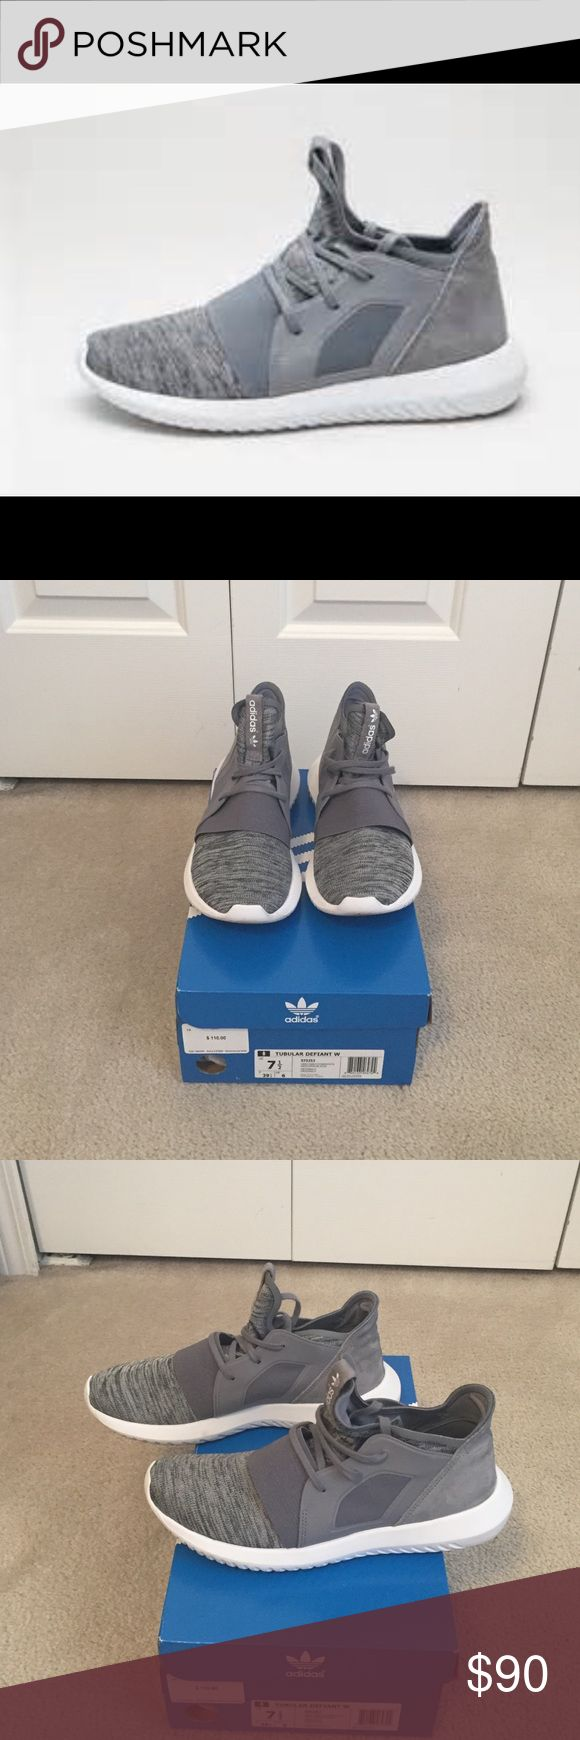 Adidas Tubular Defiant Shoes These are very comfortable sneakers in grey and white. Features the Adidas primeknit upper and suede in the back. Have been worn once but you can only tell by looking at the bottoms. There are no scuffs on the shoes. Adidas Shoes Athletic Shoes